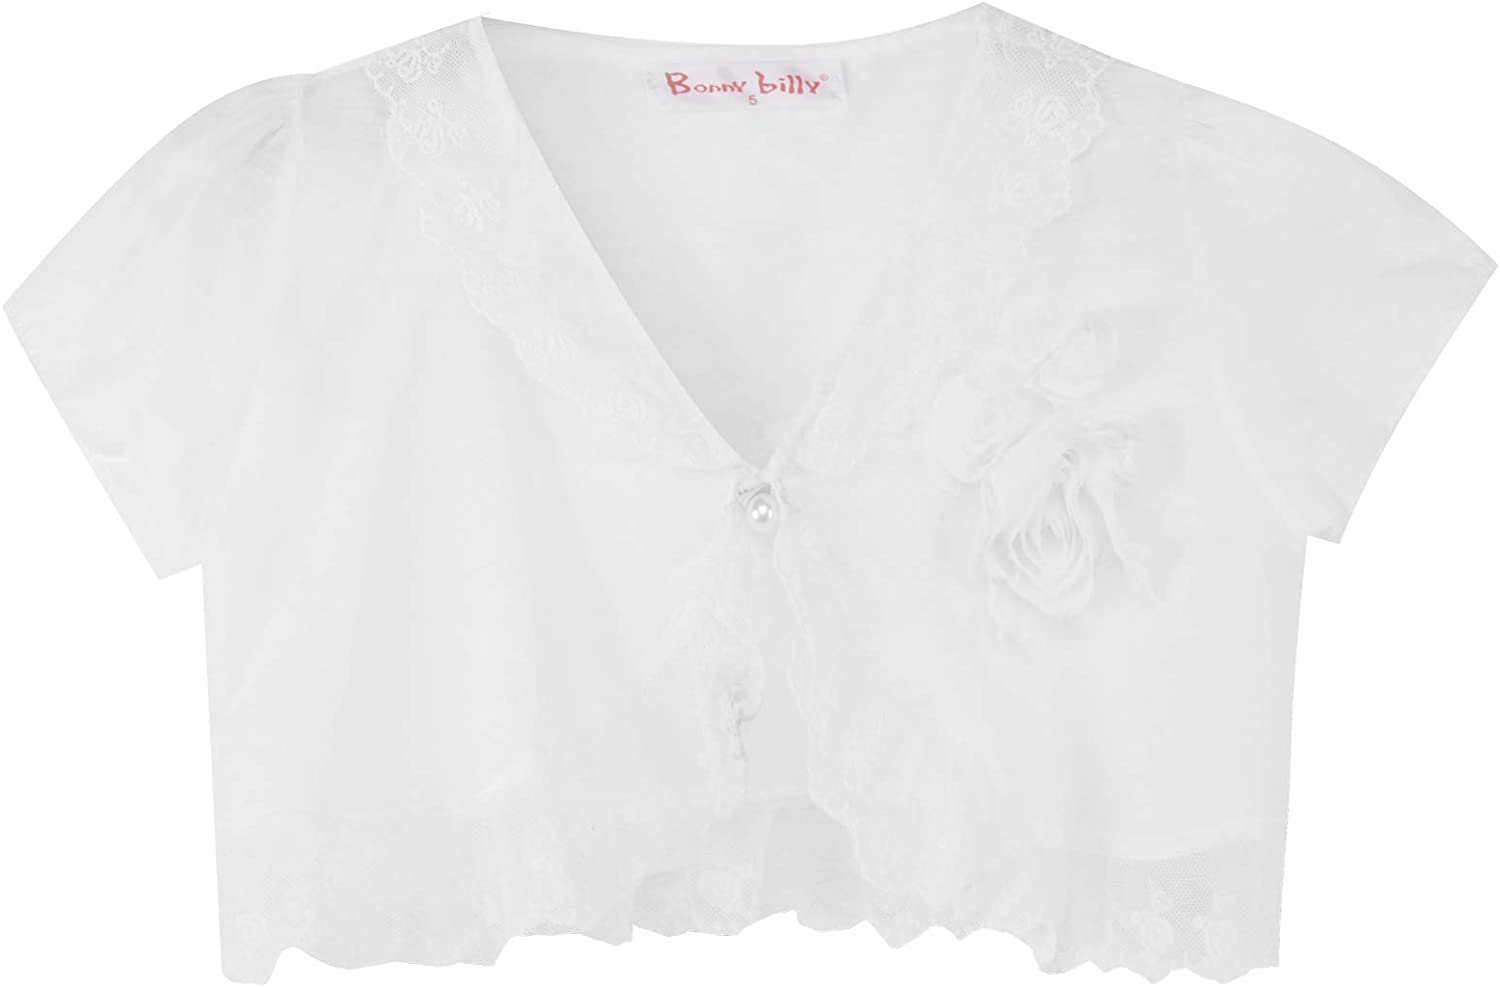 Bonny Billy Big Girls' Cap Sleeve Lace Bolero Cardigan Shrug 10-11 Years White